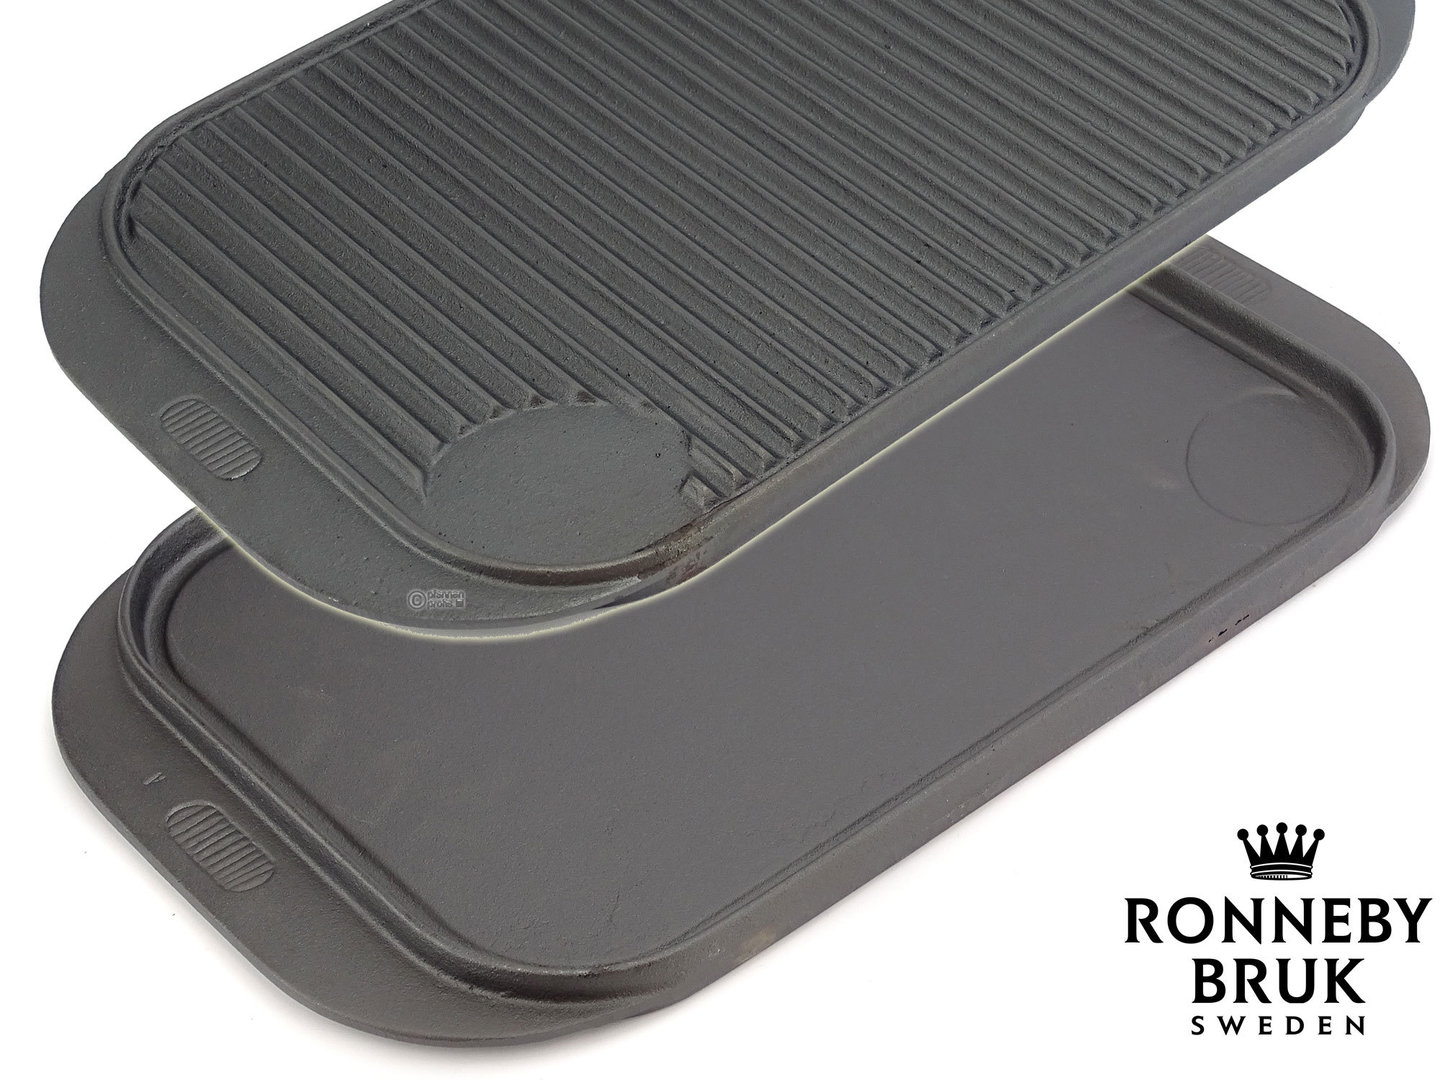 RONNEBY BRUK double-sided cast iron griddle, pre-seasoned